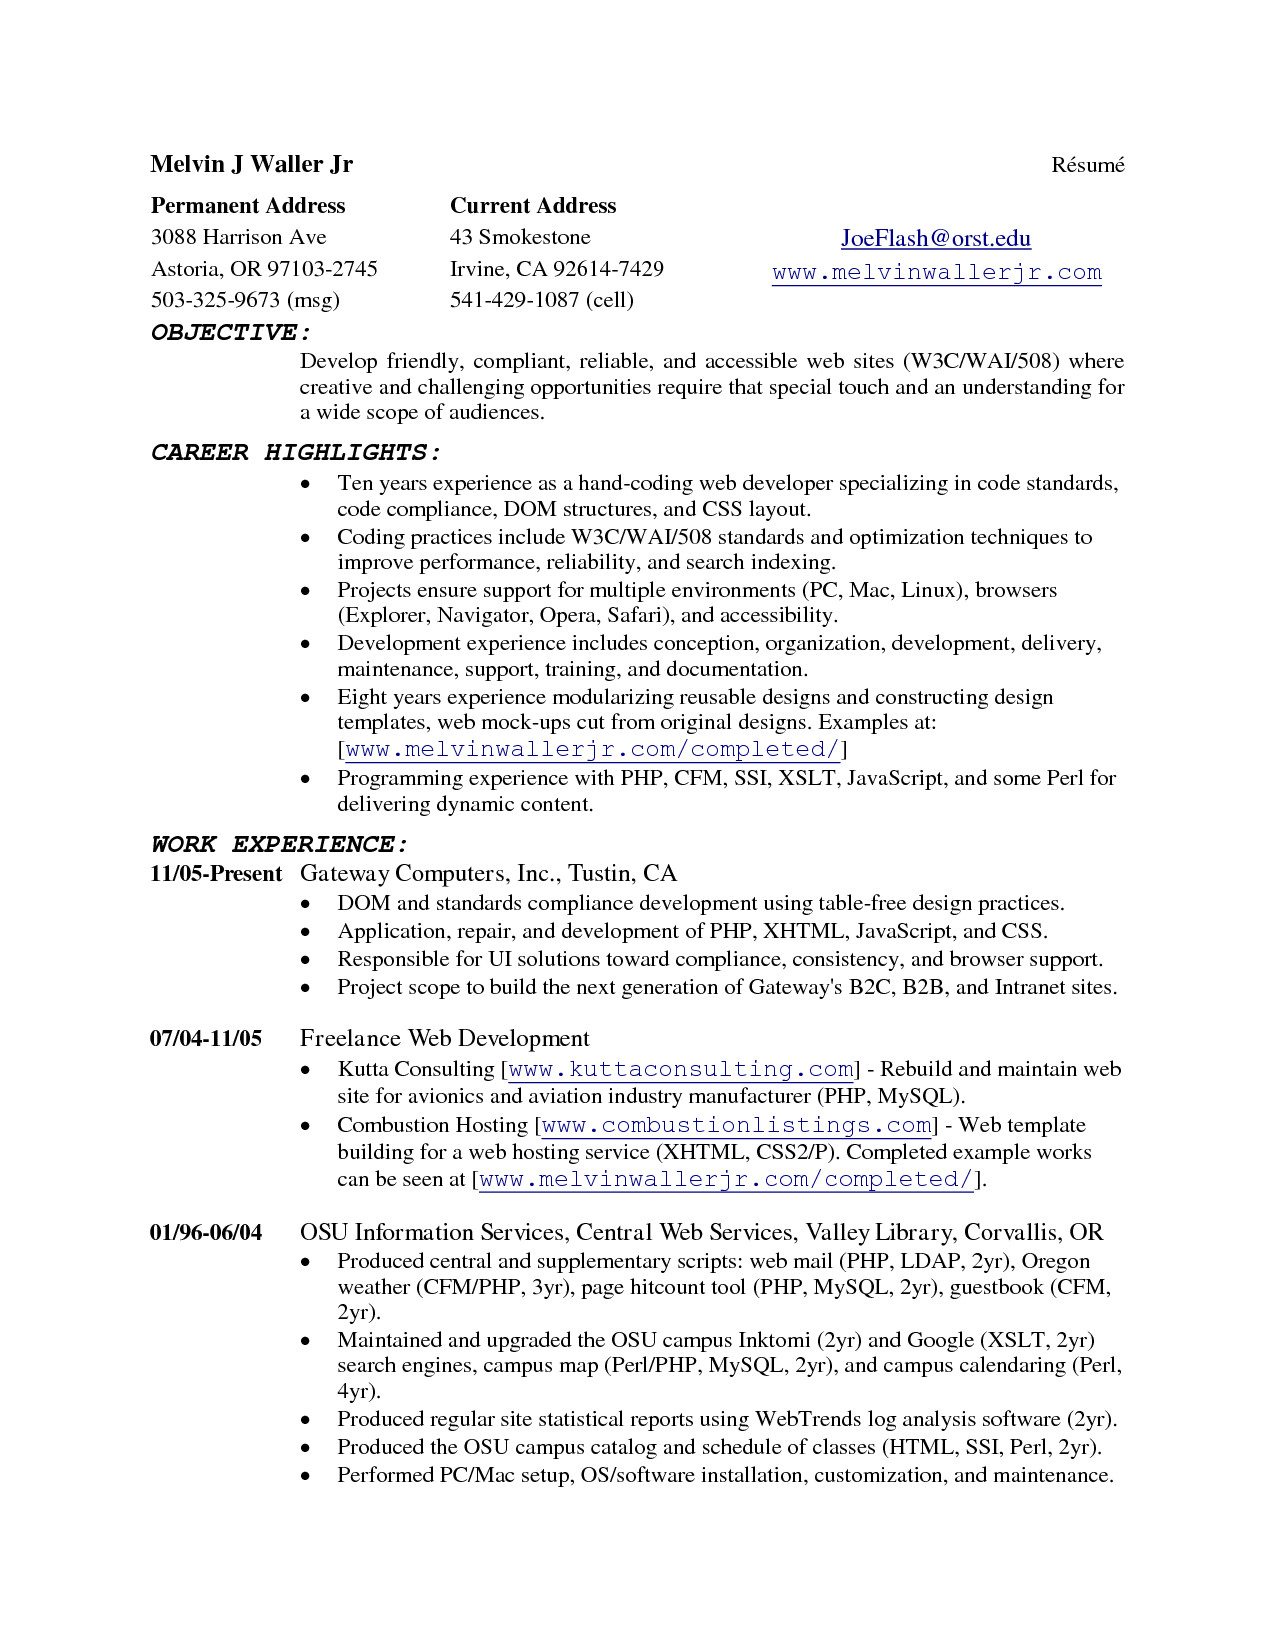 Rent Free Letter Template for Mortgage - Writer Resume Template Financial Services Resume Template New Hr